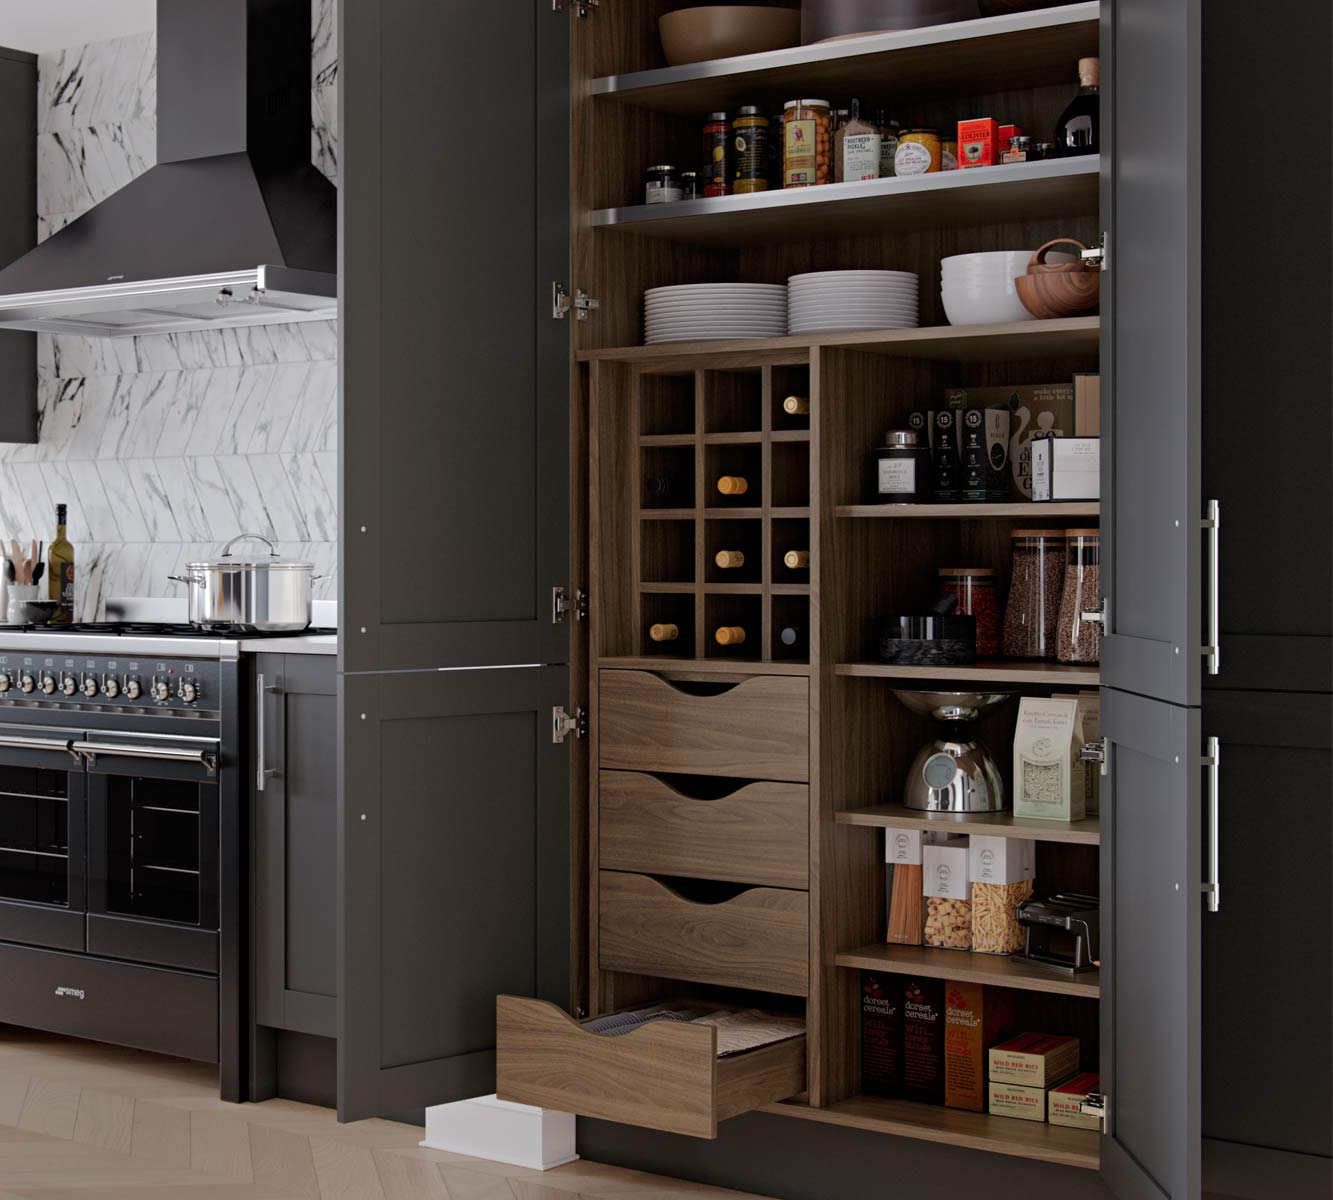 Masterclass Kitchens Blackburn Lancashire Shelford highland stone portland oak 150 magnaspace2